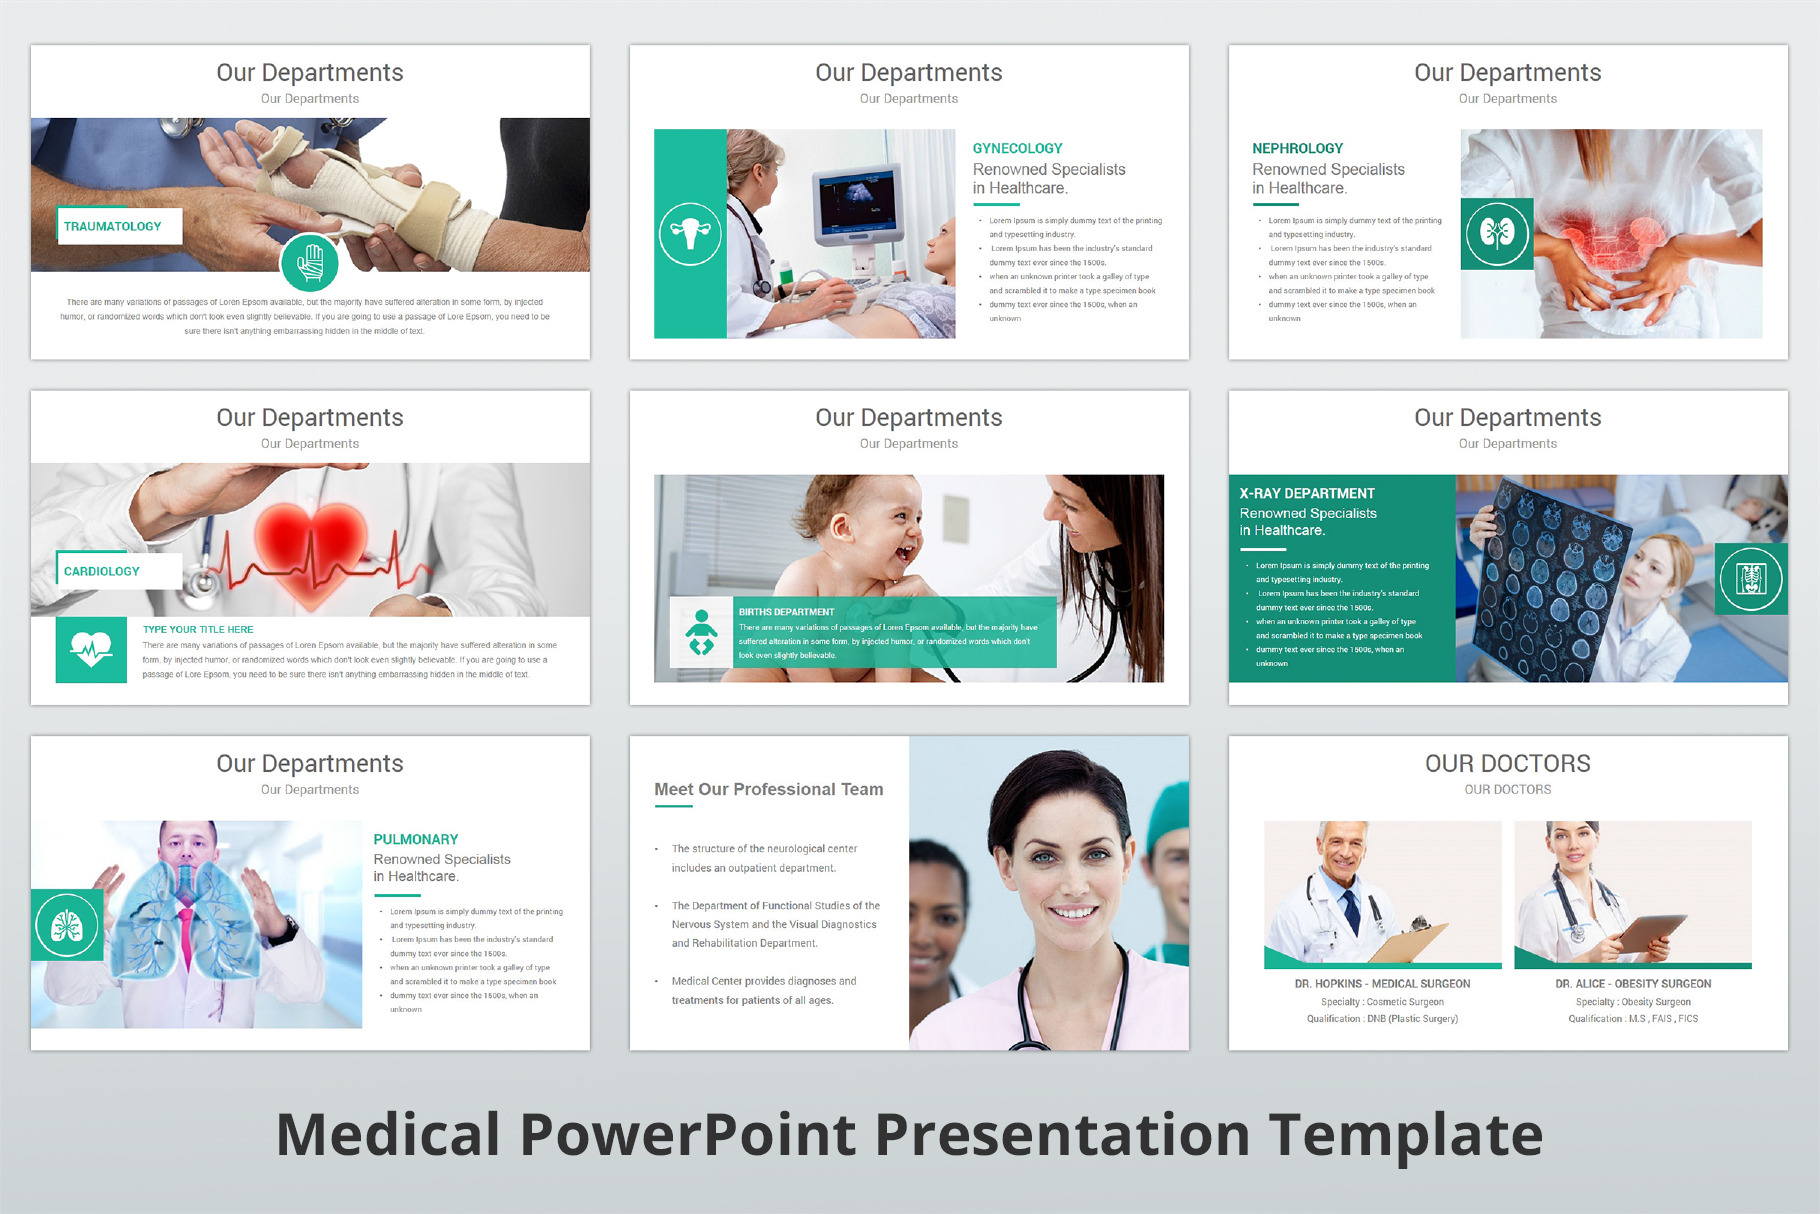 Medical and Healthcare Presentation PowerPoint Template example image 7